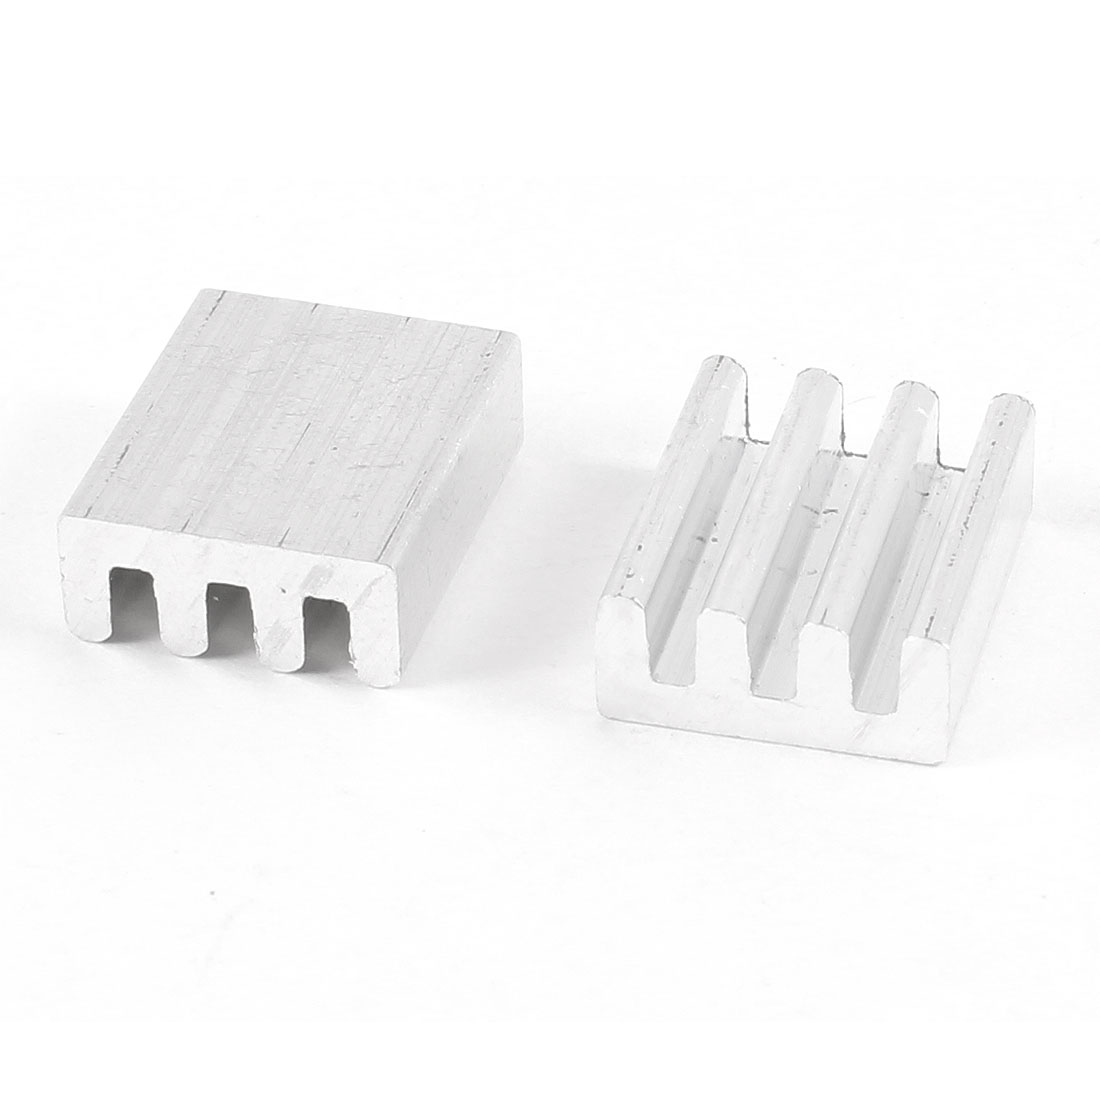 2 Pcs 17mm x 14mm x 6mm Aluminium Heatsink Radiating Cooler Cooling Fin